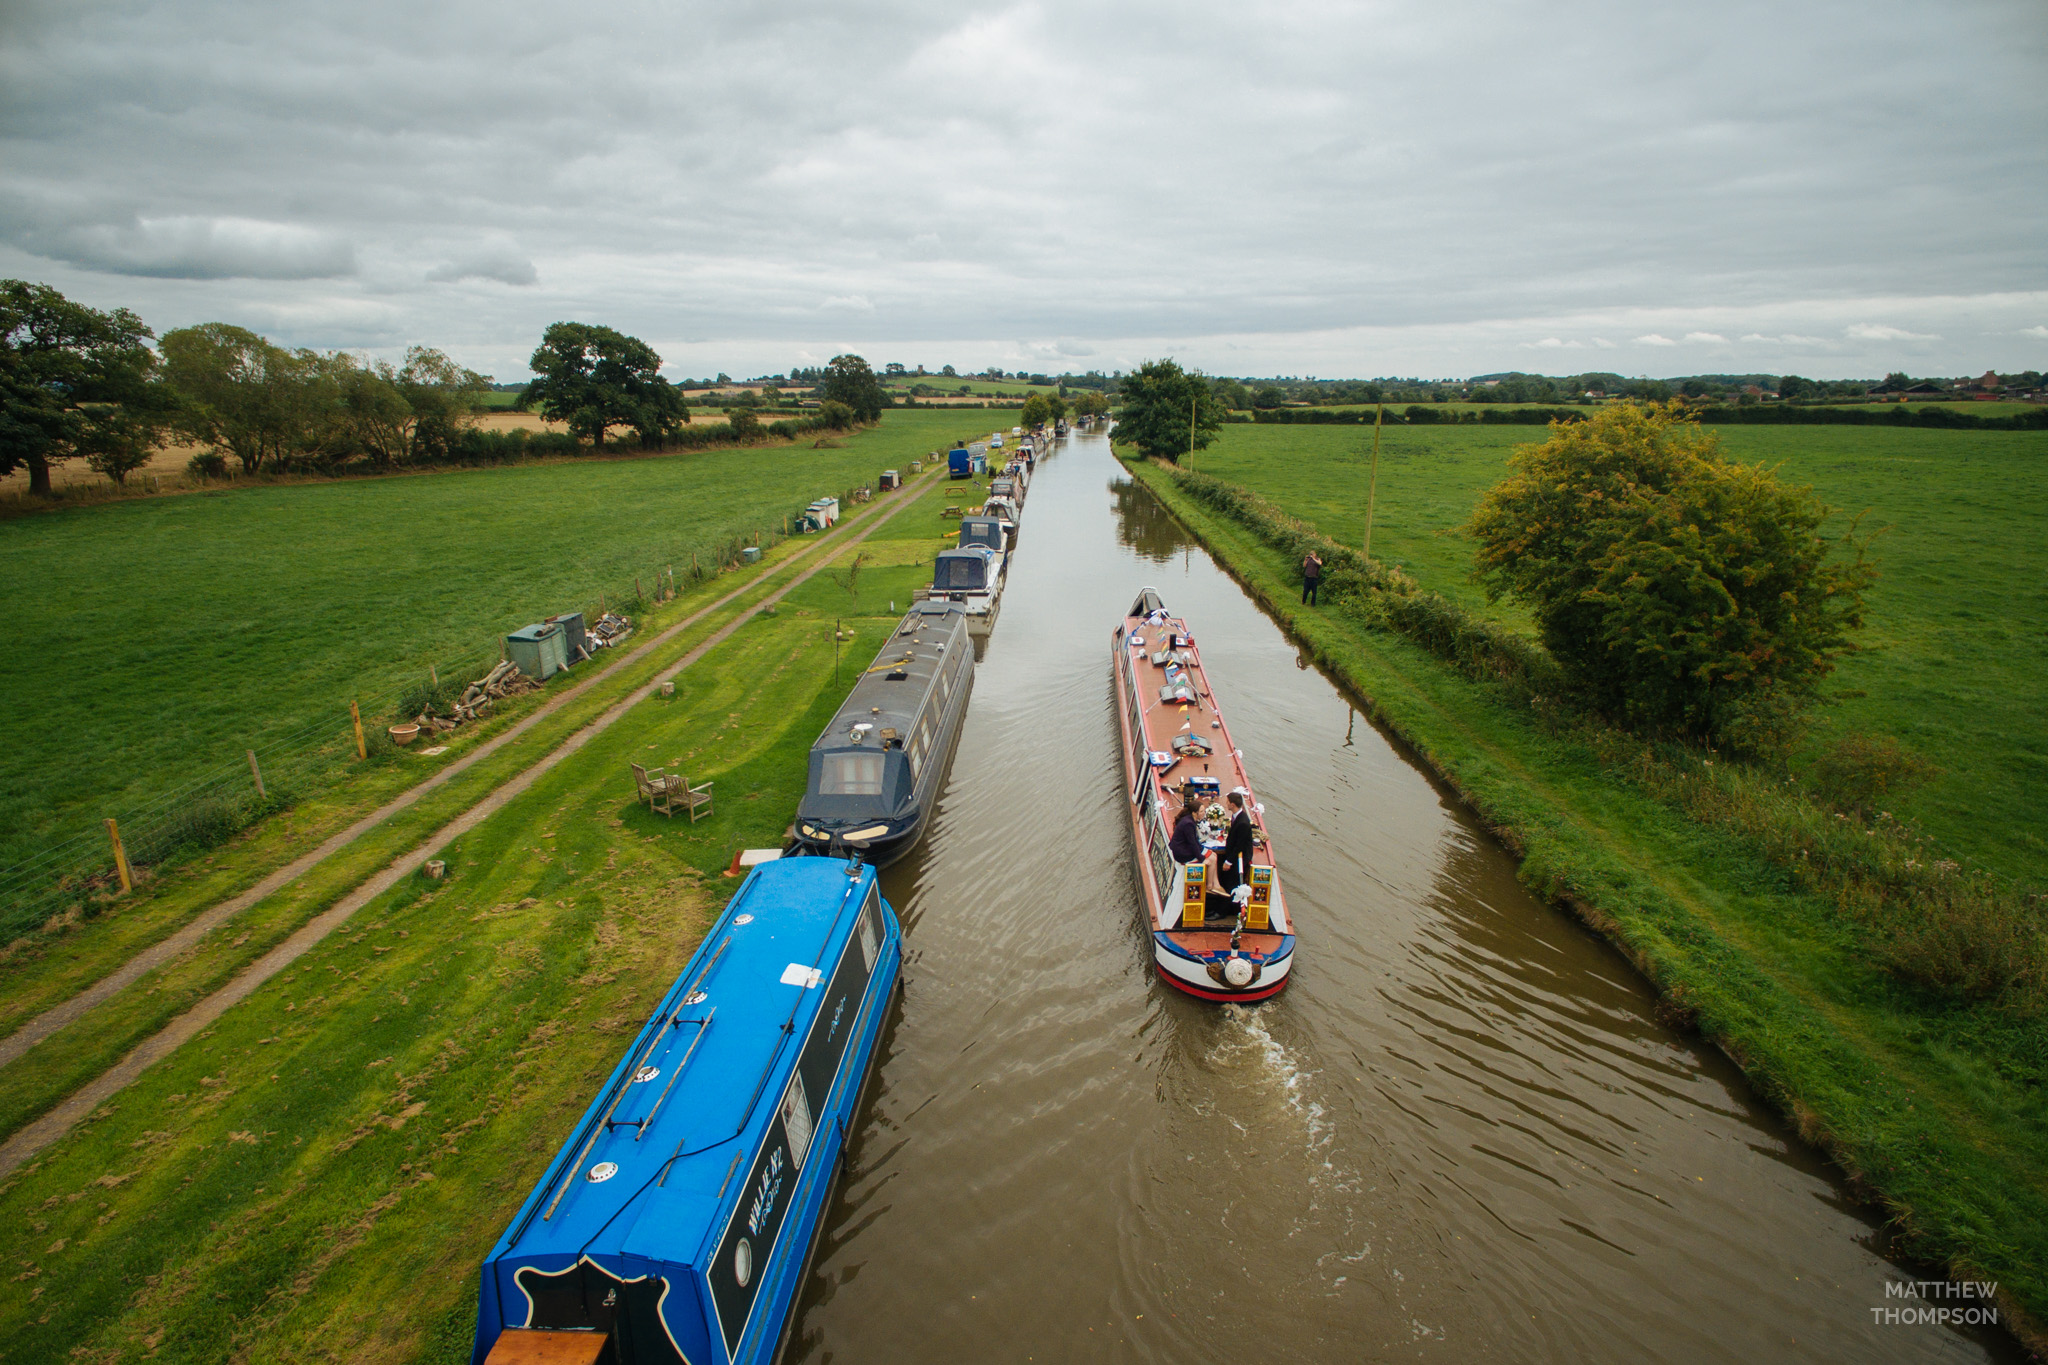 150920-Parrott-Canalboats-Aerial-142-W.jpg